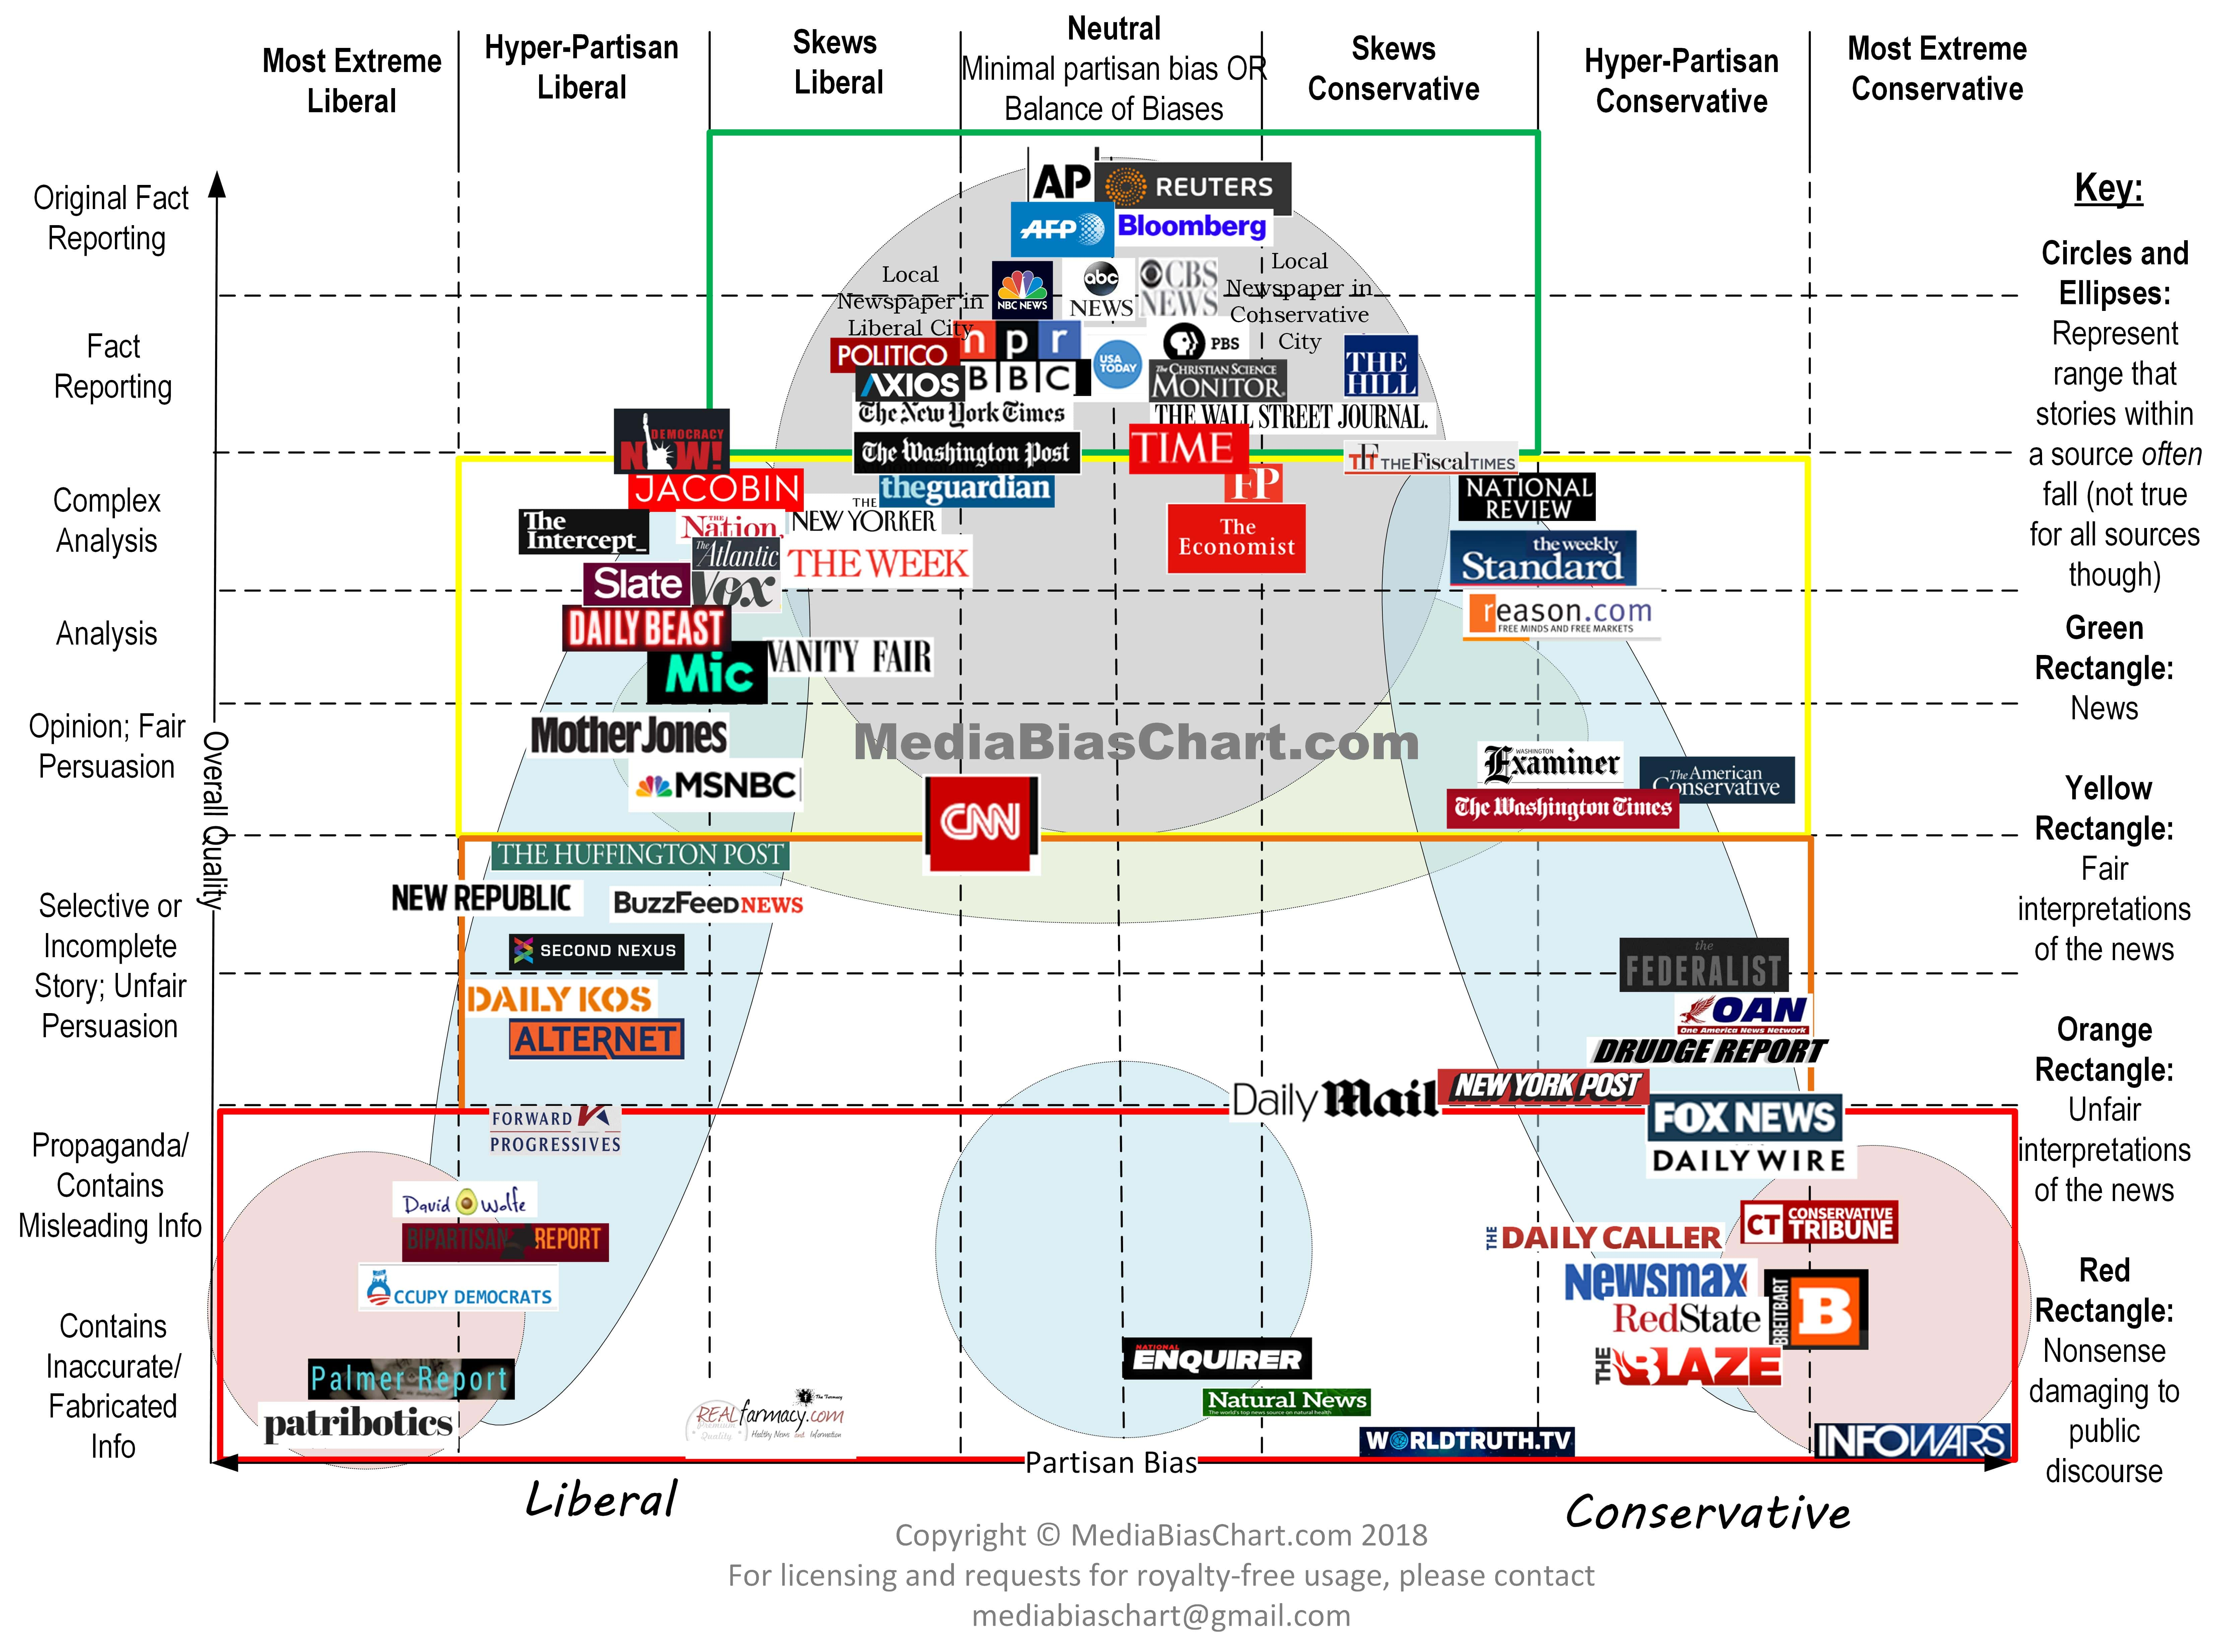 This chart shows news outlets and labels them as liberal or conservative.  Examples include:  Liberal:  The Huffington Post, MSNBC, and Buzz Feed News.  Conservation new outlets include:  New York Post, Daily Mail, and The Washington Times.